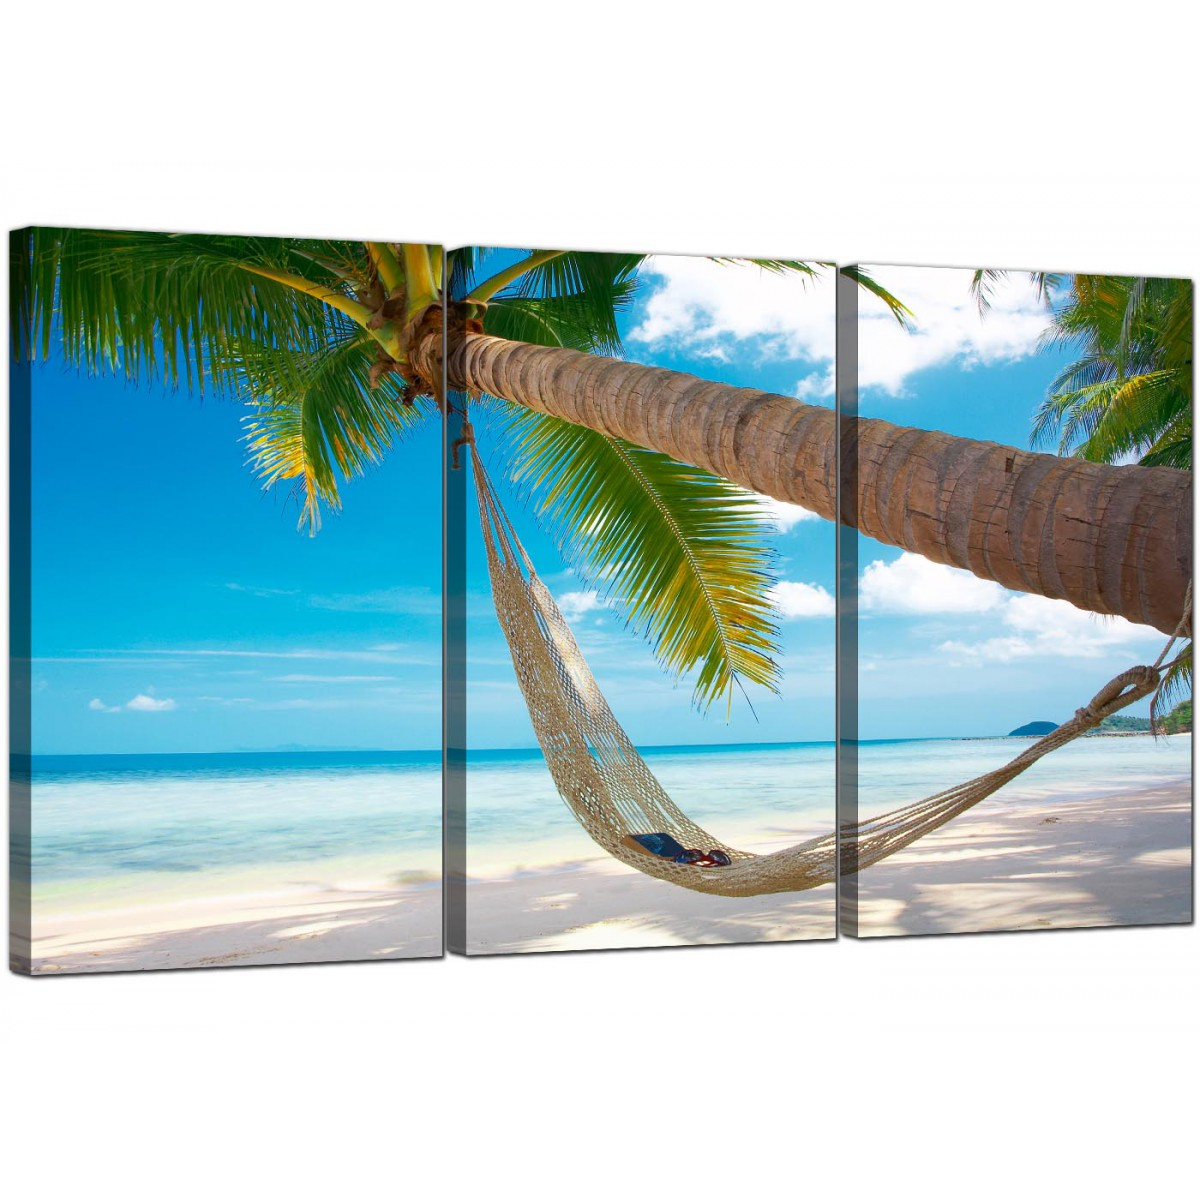 Cheap Tropical Beach Canvas Prints Uk 3 Panel For Your